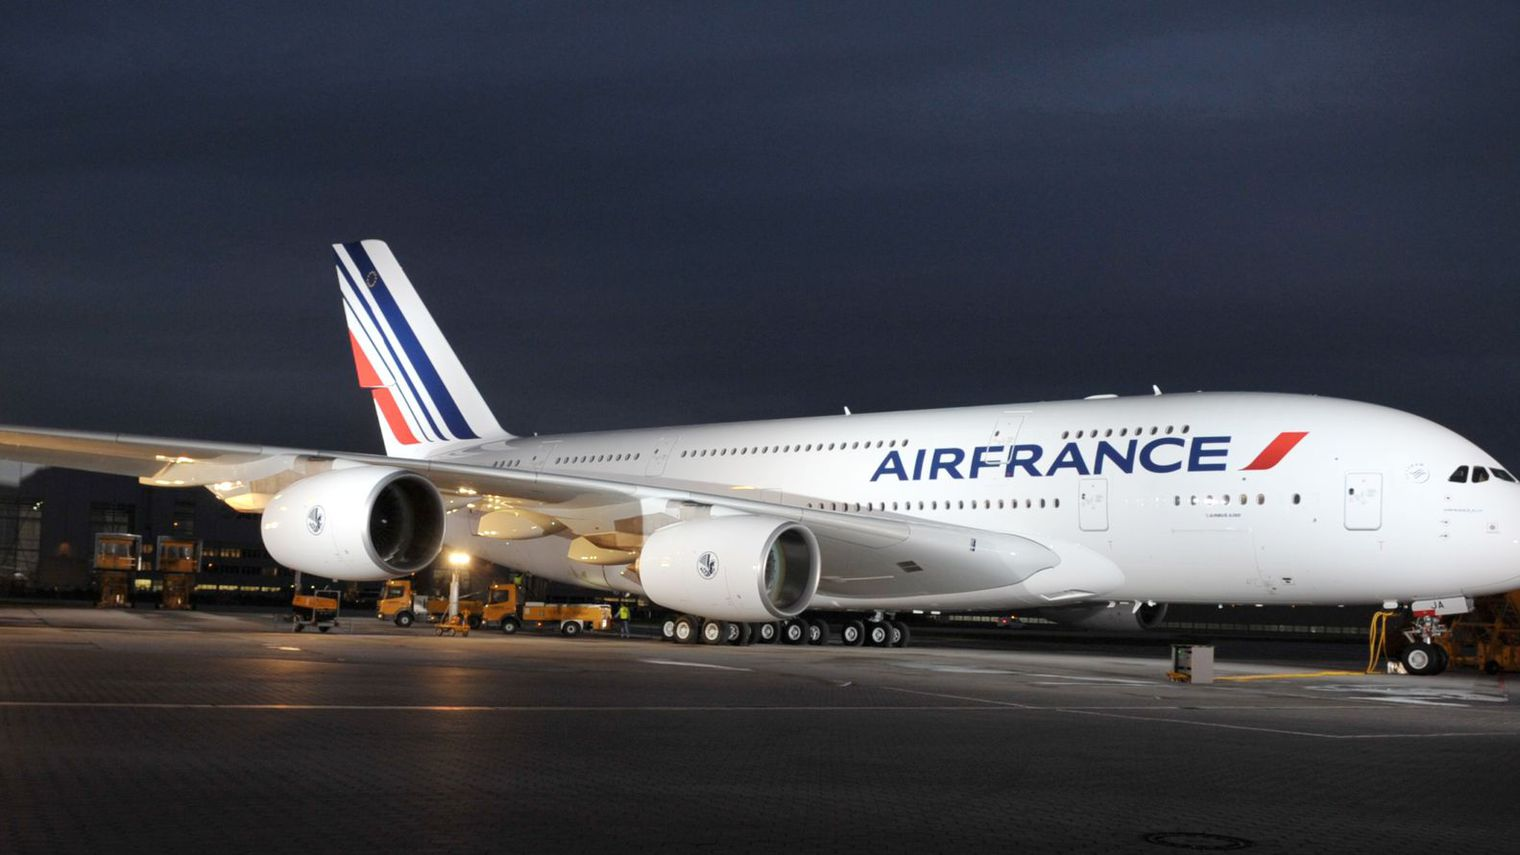 Terrorisme enqu te sur les sabotages touchant air france for Interieur d avion